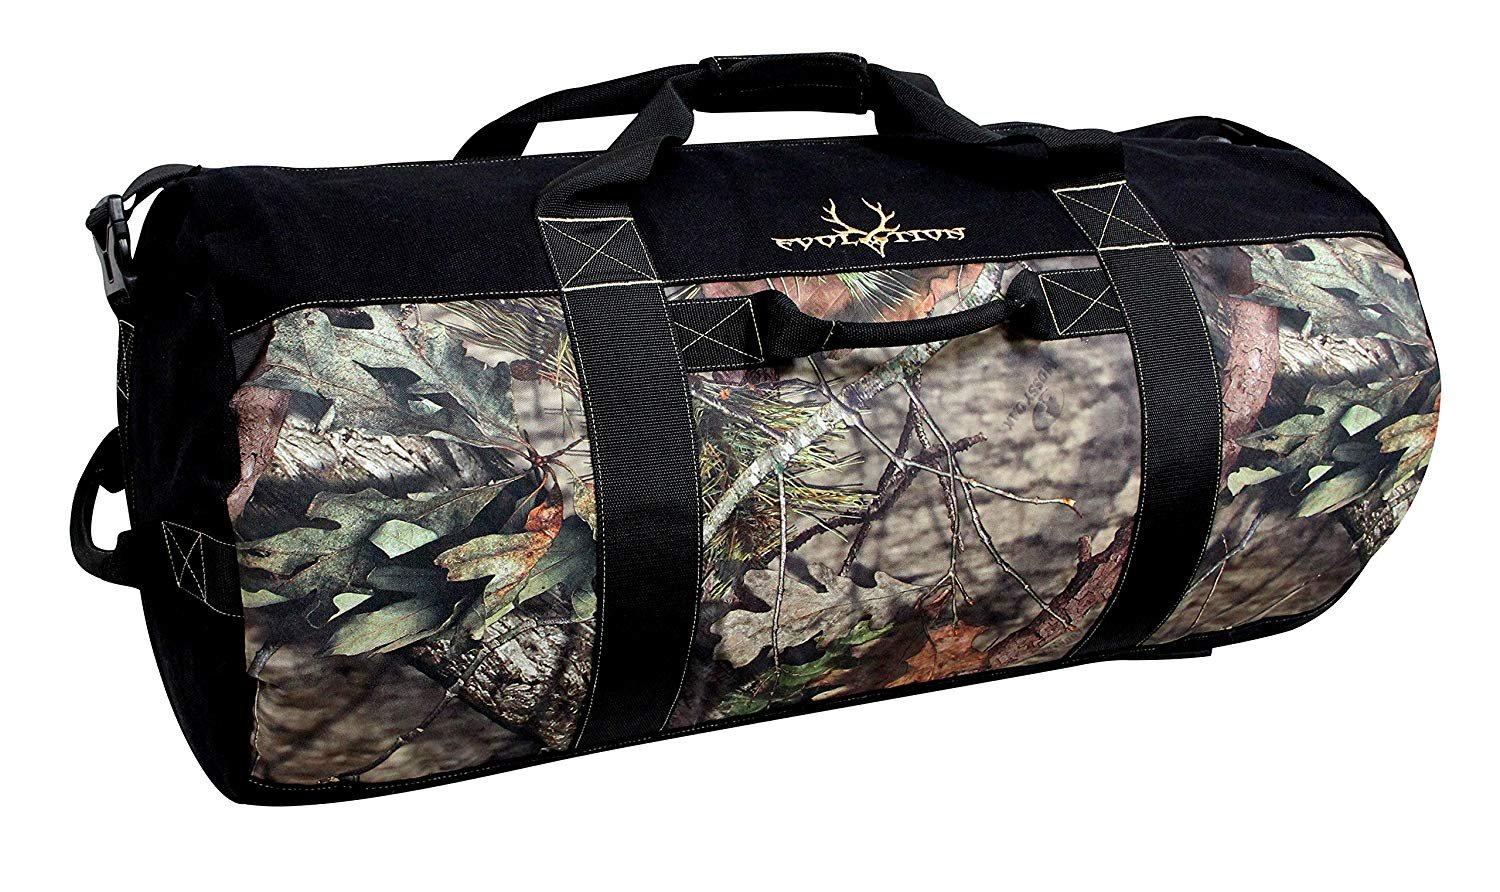 Evolution Outdoor Design Mossy Oak Duffel Bag XXXL